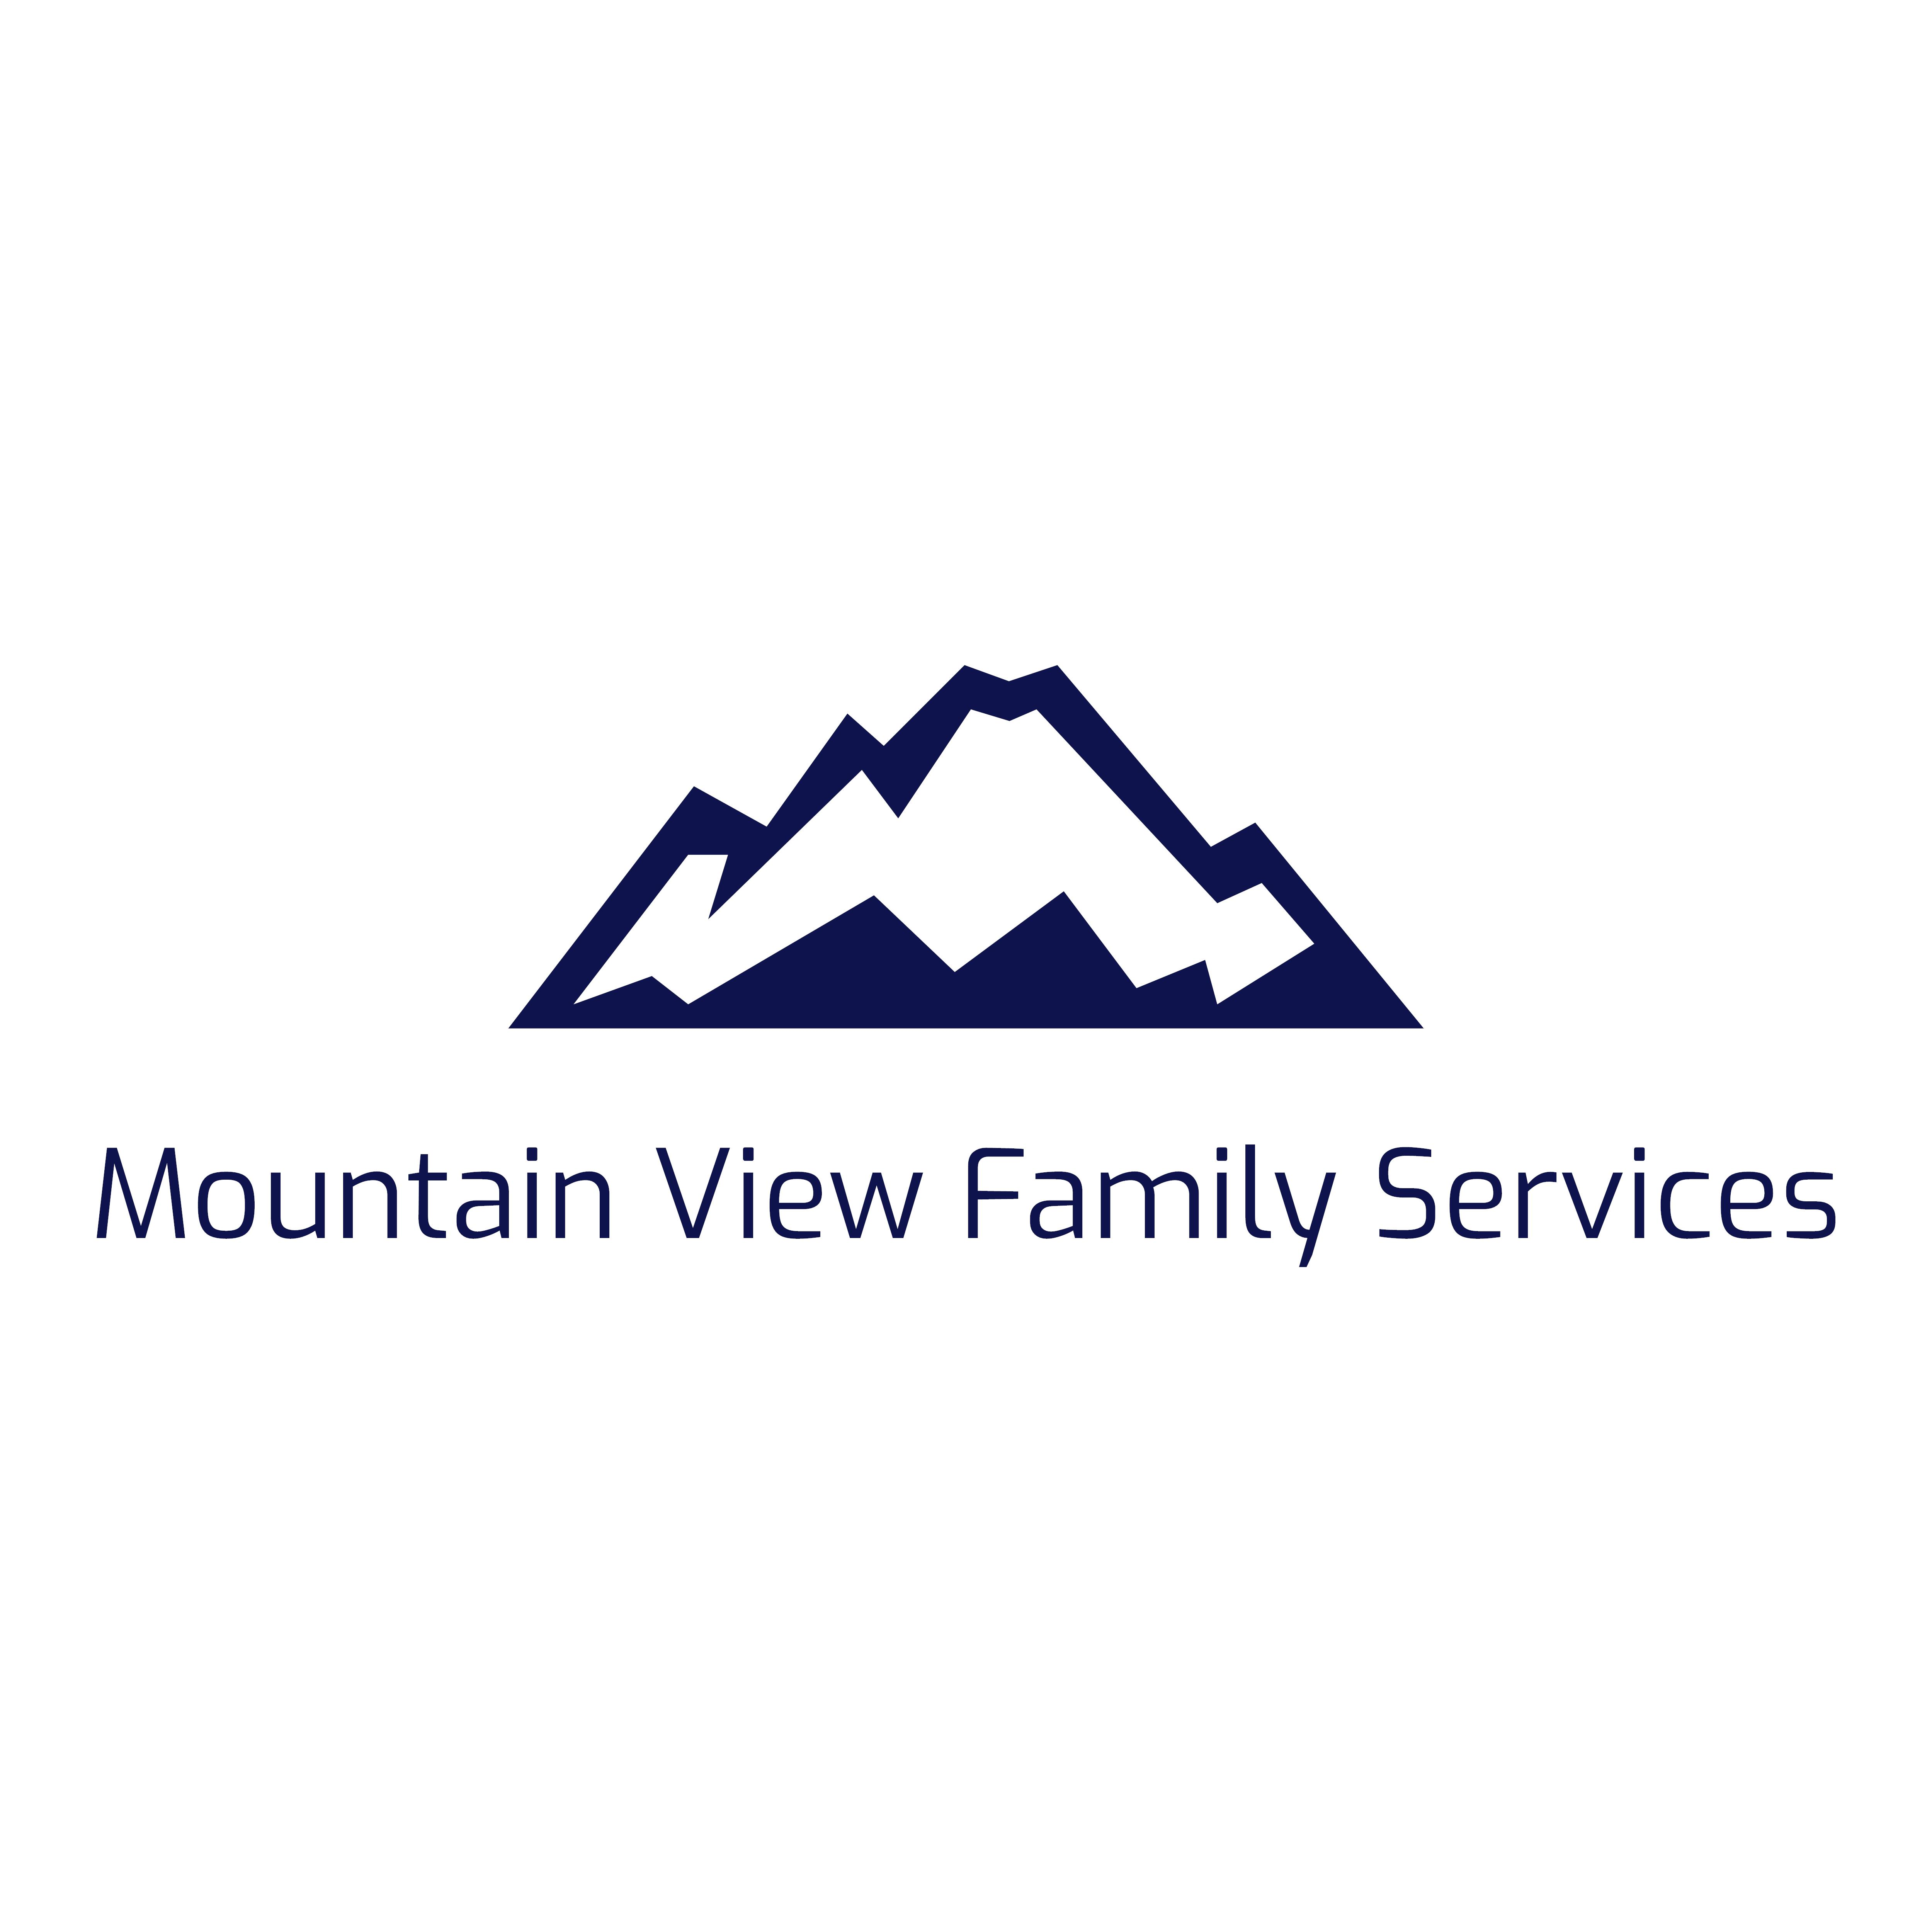 MountainViewFamilyServices